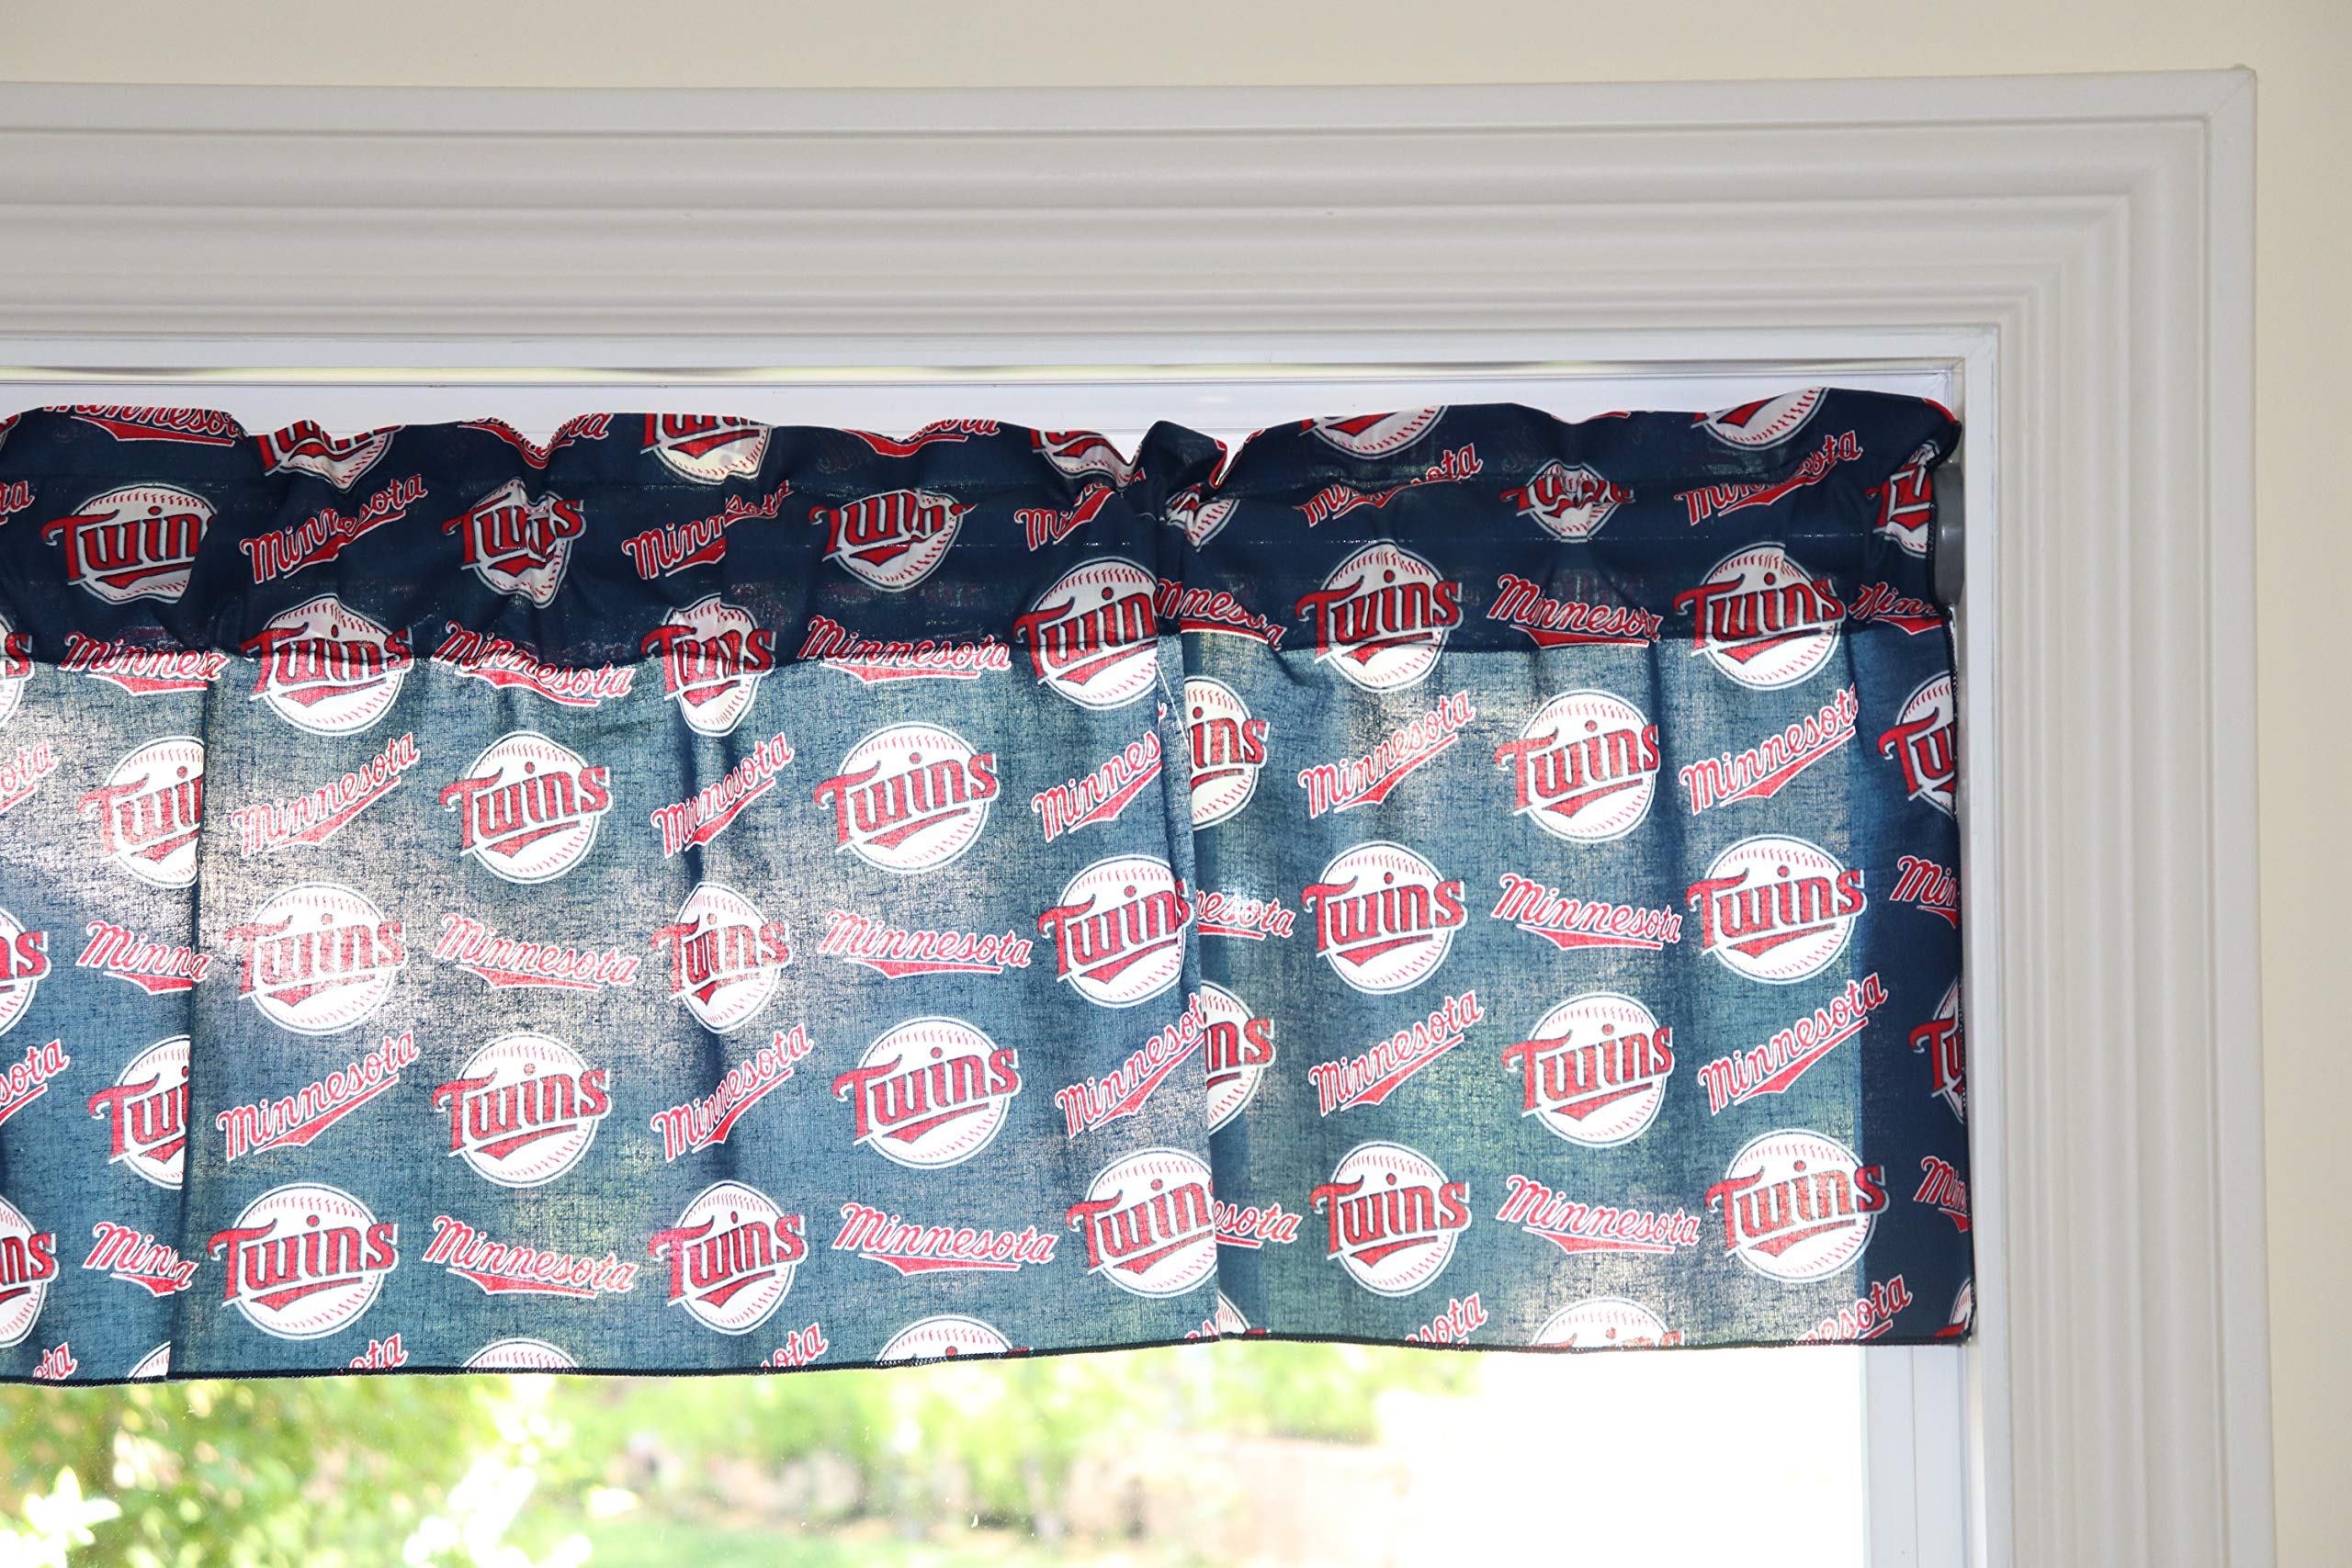 lovemyfabric Baseball Cotton Window Valance 100% Cotton Print MLB Sports Team Minnesota Twins Events Kitchen Dining Room Bedroom Window Decor (58'' Wide) (28'' Tall) by lovemyfabric